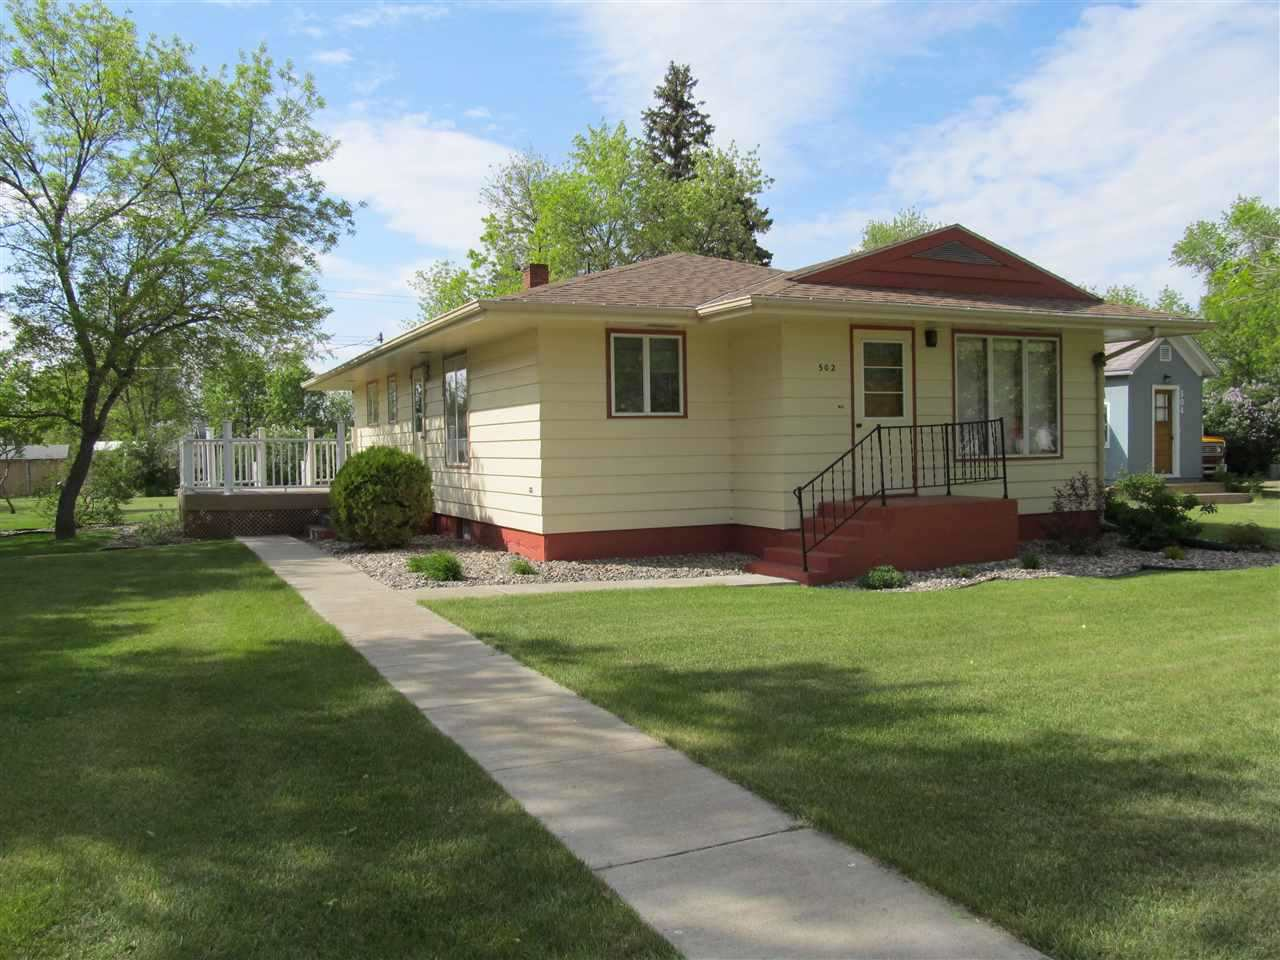 502 N MAIN, Bowbells, ND 58721